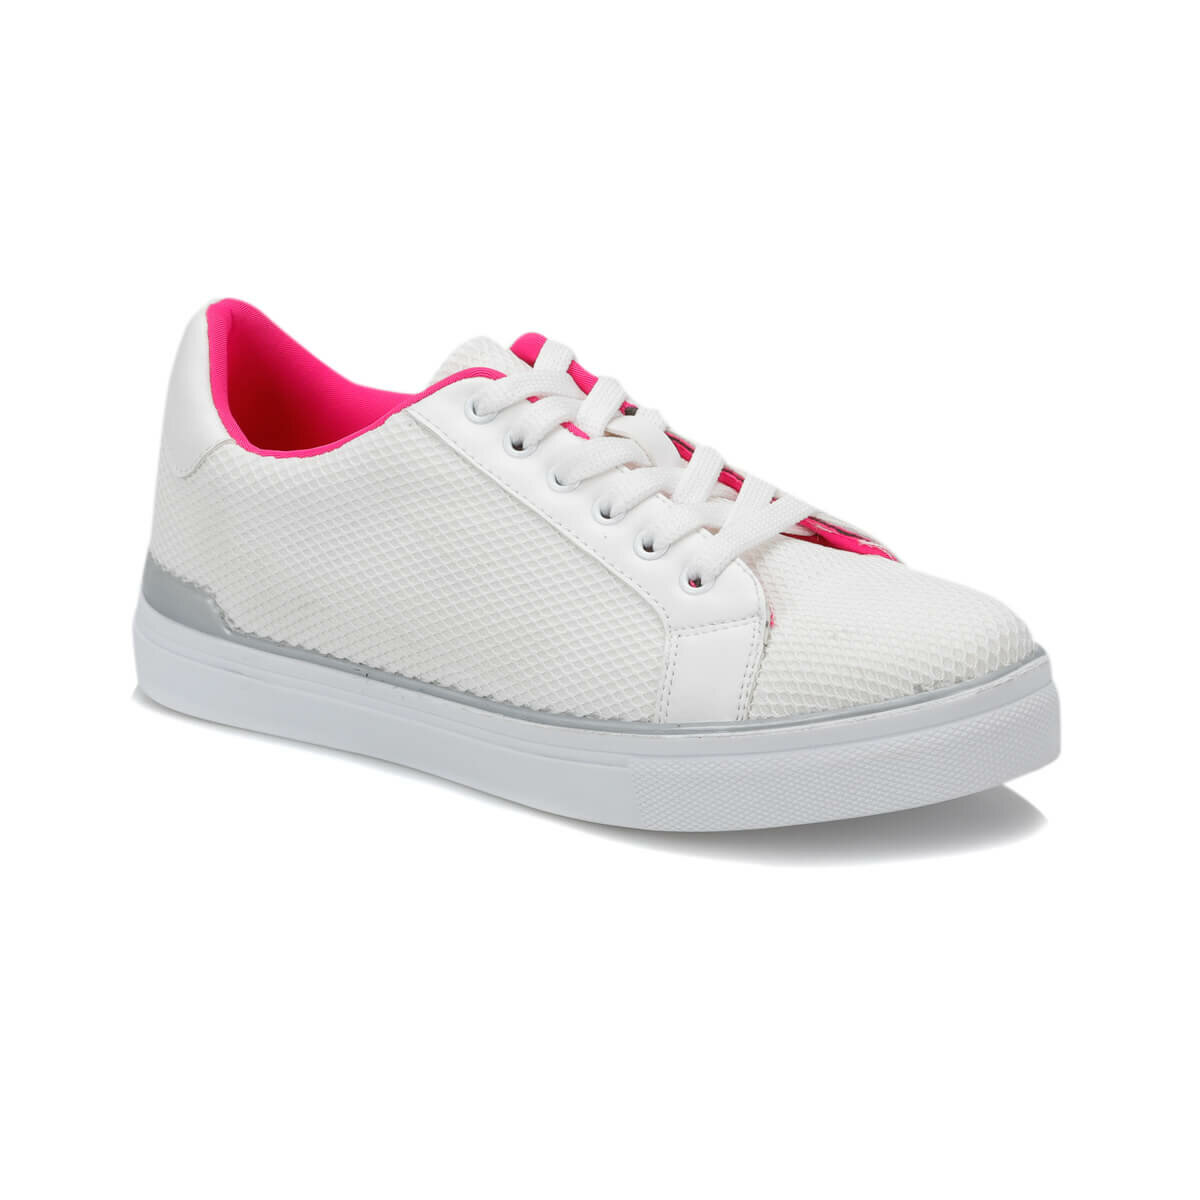 FLO 19S-476 Pink Women 'S Sneaker Shoes BUTIGO